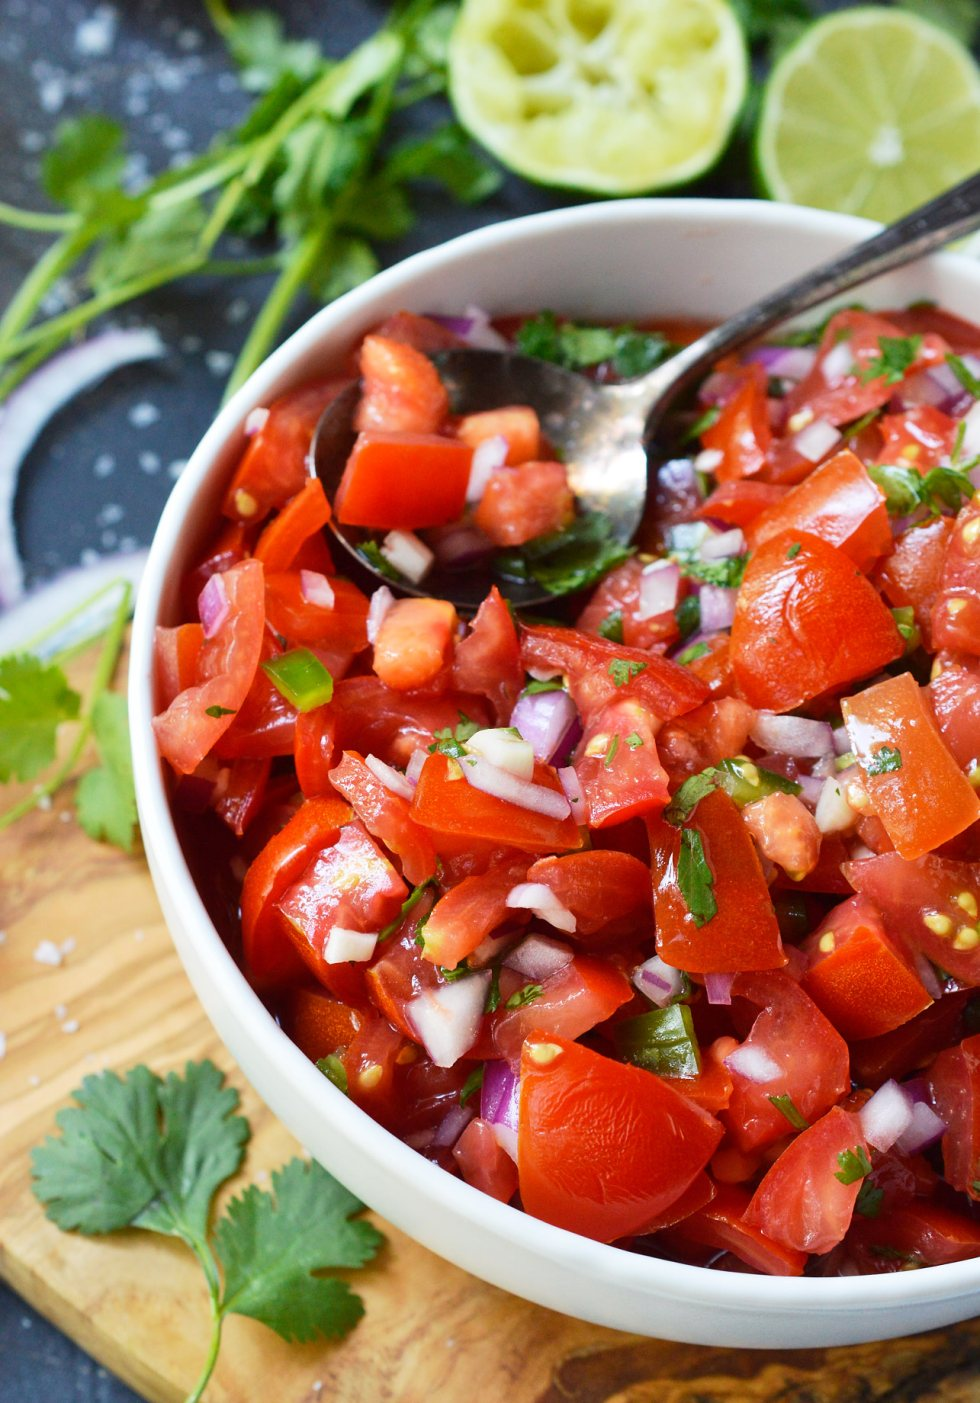 Start the summer off right with Fresh Homemade Pico de Gallo that is spiked with Tequila. Perfect for a party appetizer or a tasty snack by the pool! This salsa is great with chips or use it as a fresh, flavorful condiment. Omit the tequila and this recipe is Paleo & Whole30 friendly, grain free, gluten free, vegan, vegetarian and dairy free. #dairyfreerecipes #picodegallo #salsarecipes #paleohacks